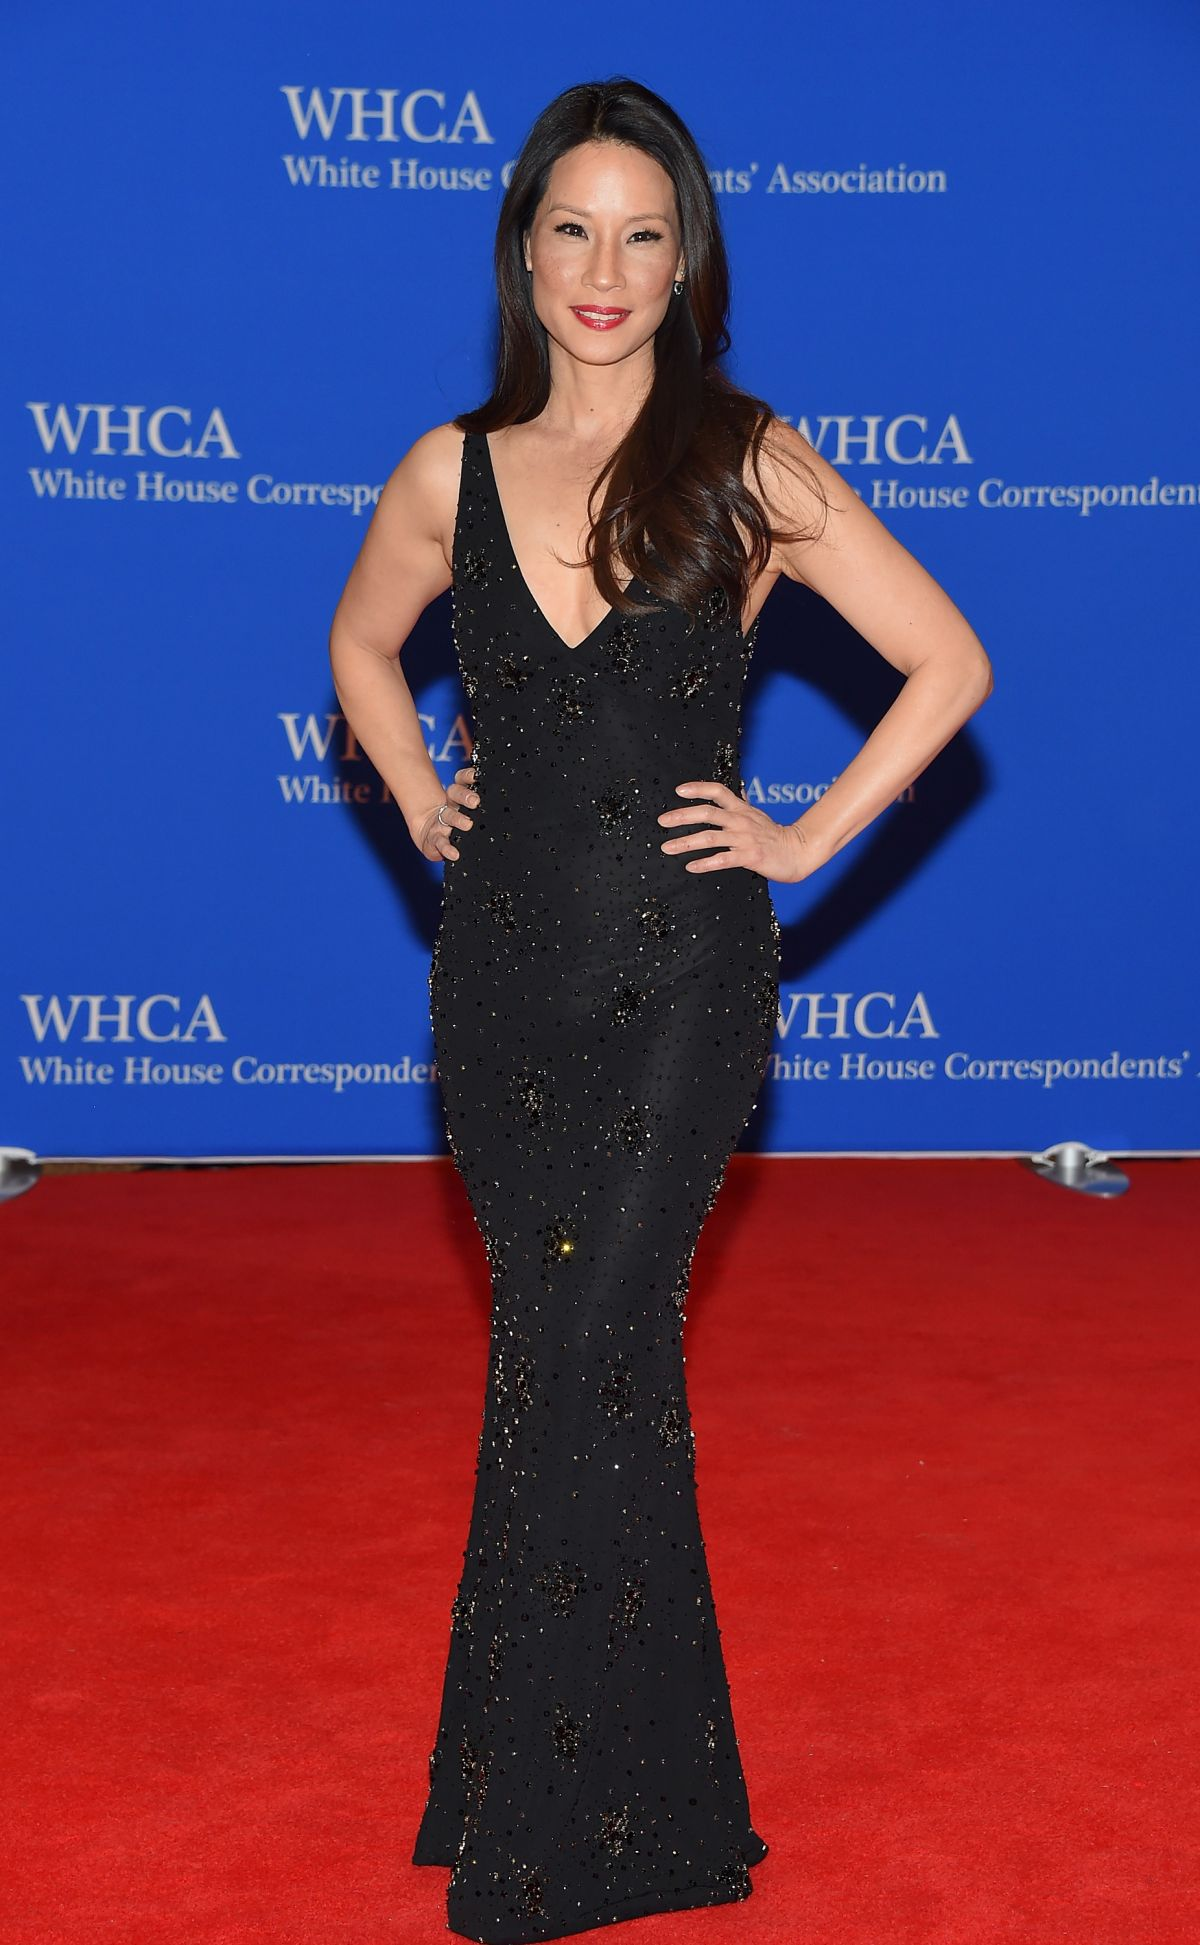 LUCY LIU at White House Correspondents Association Dinner in Washington